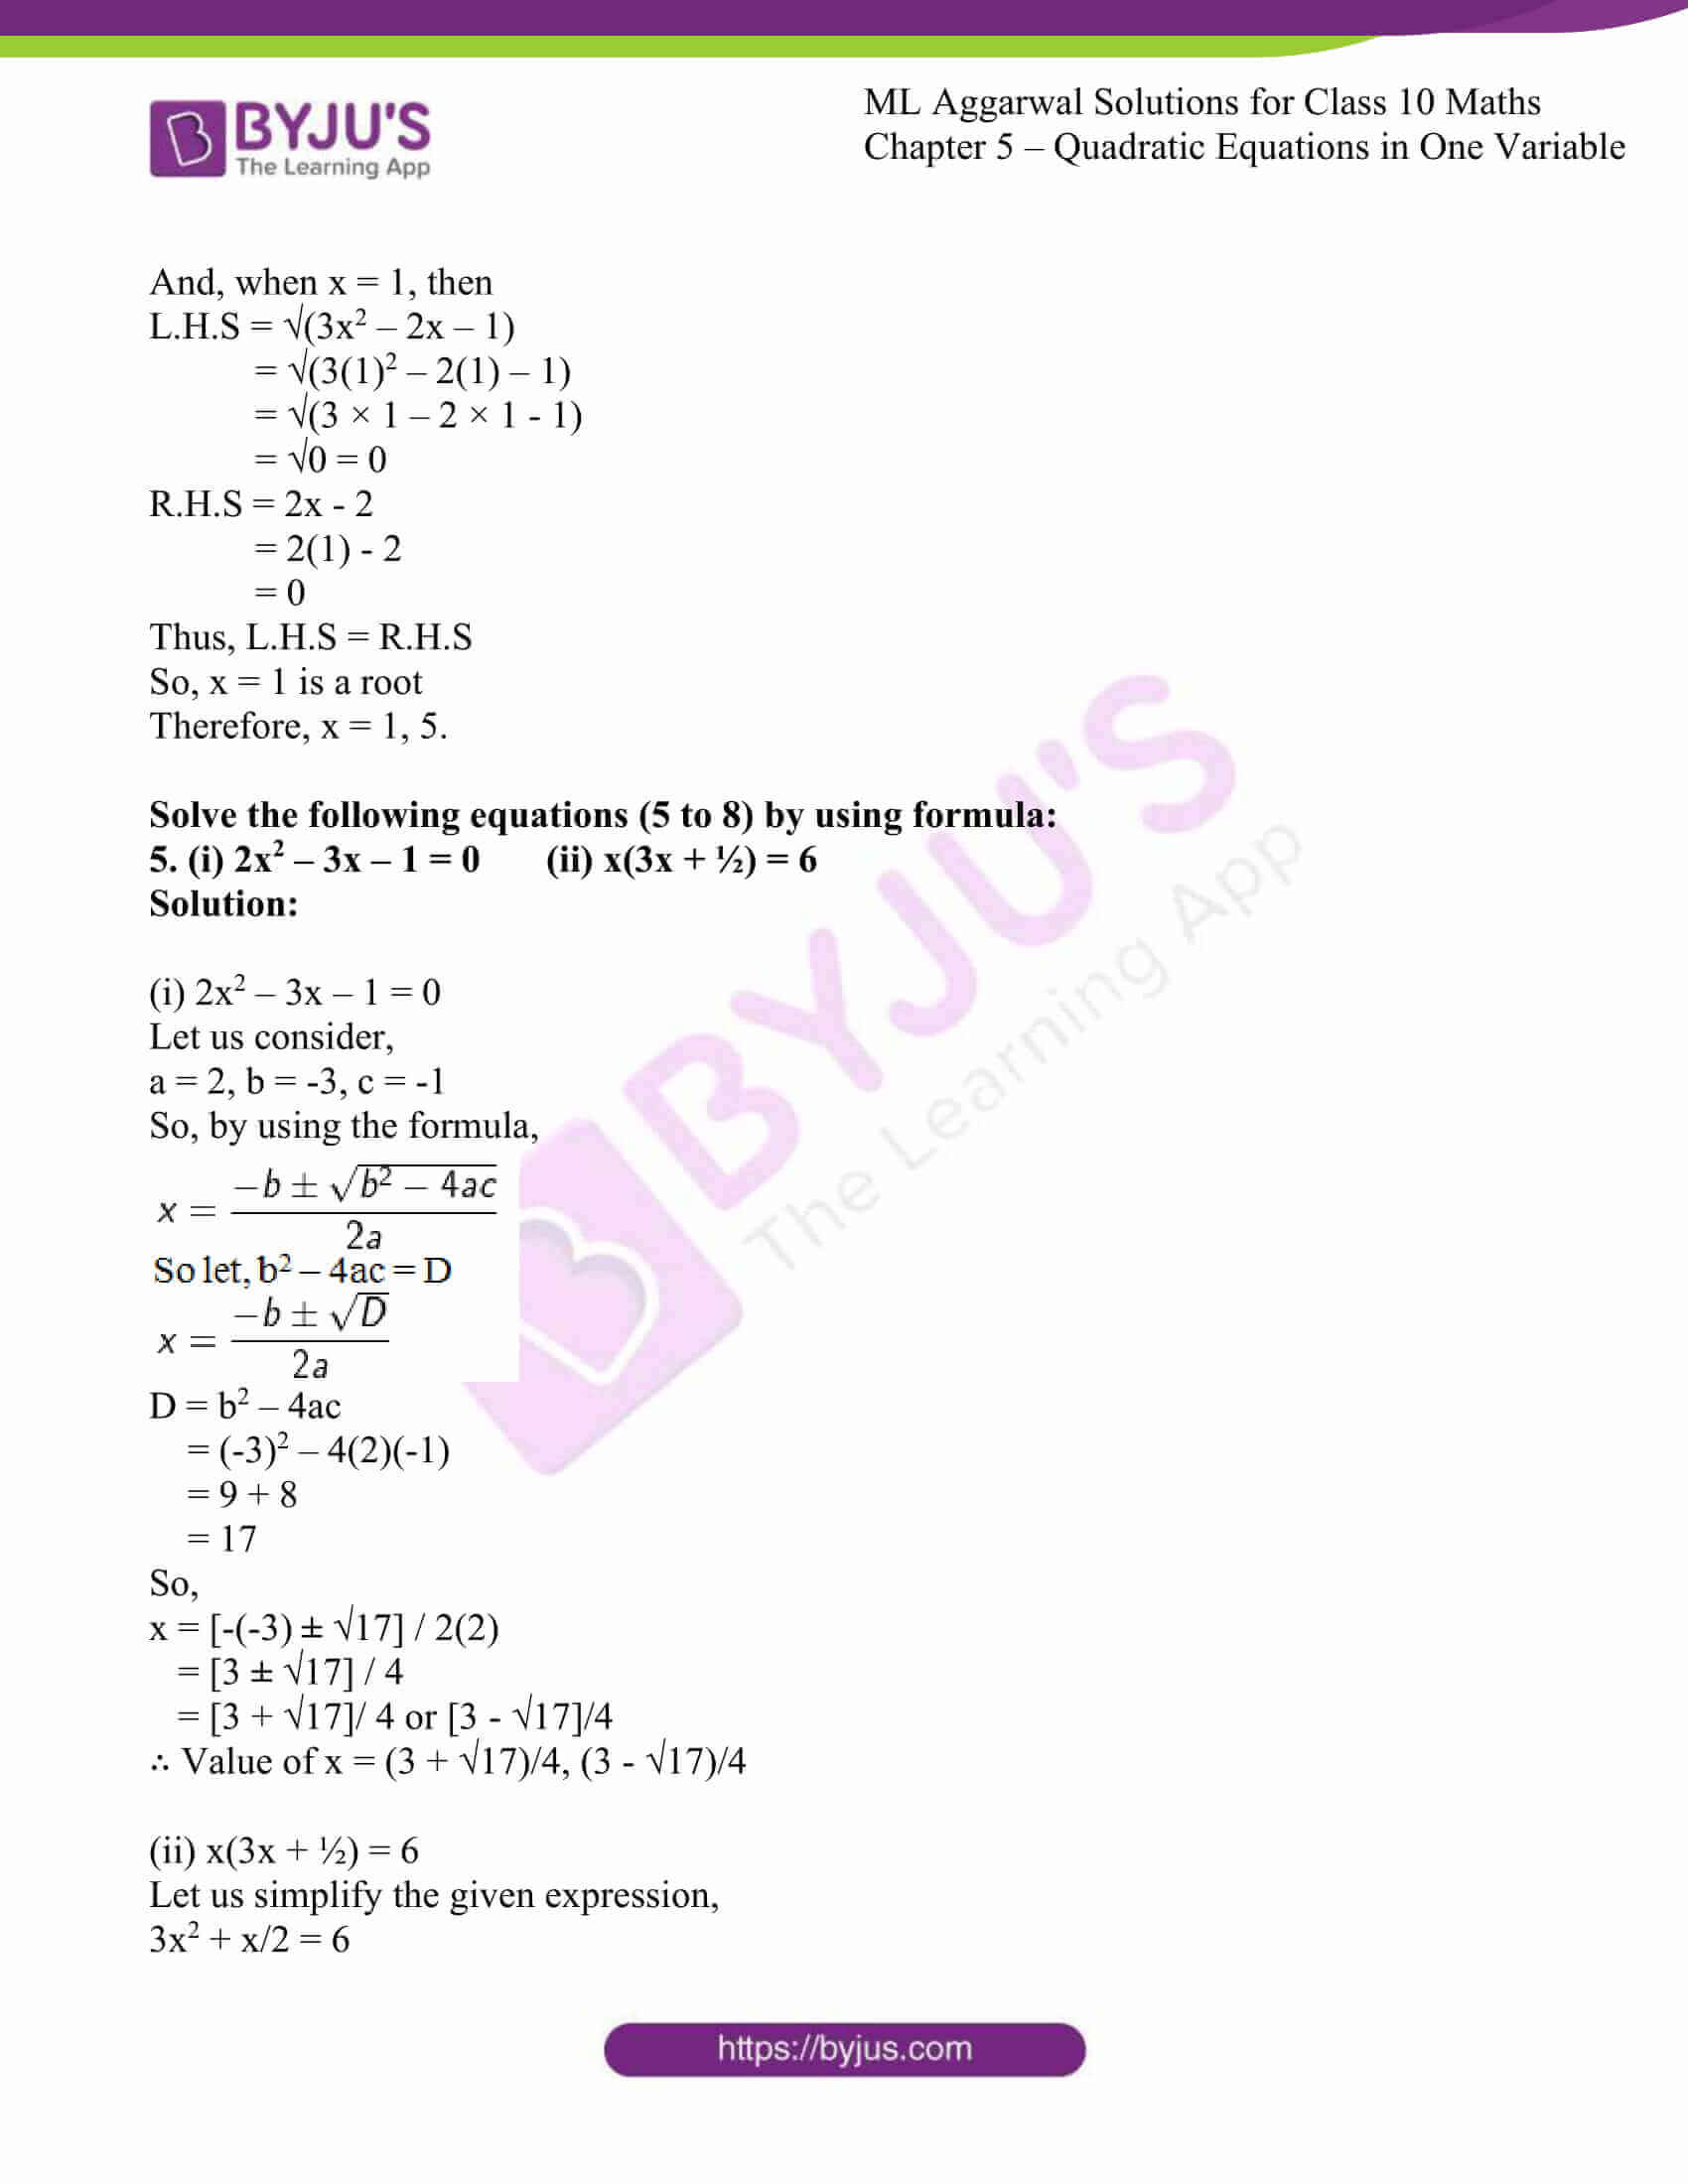 ml aggarwal solutions class 10 maths chapter 5 72